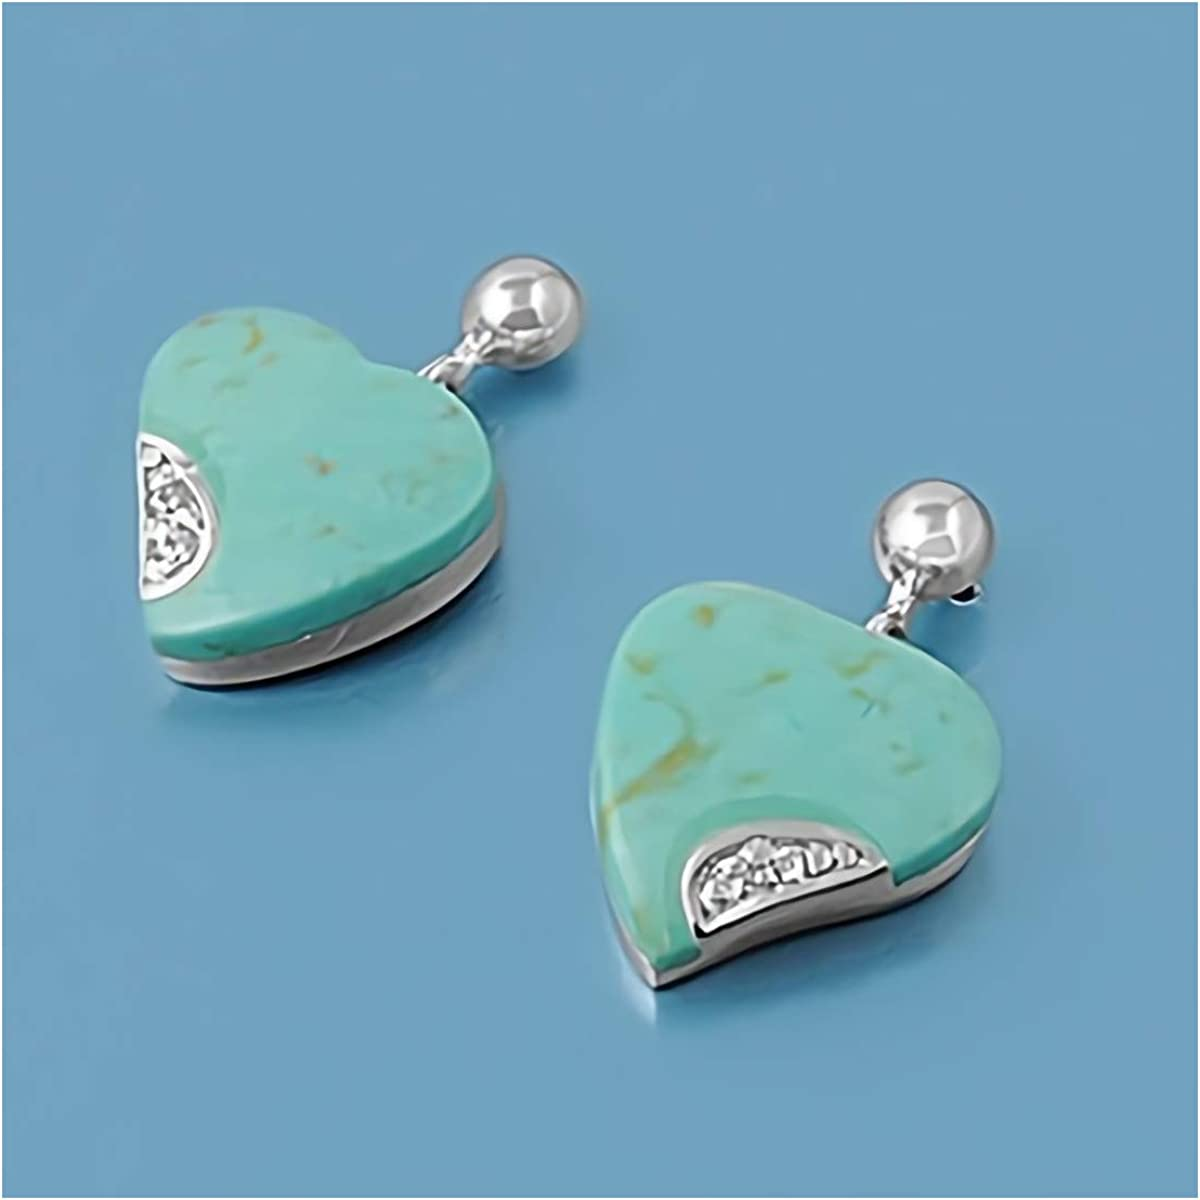 Blue//Green Glitzs Jewels 925 Sterling Silver Pendant with Stone in Gift Box